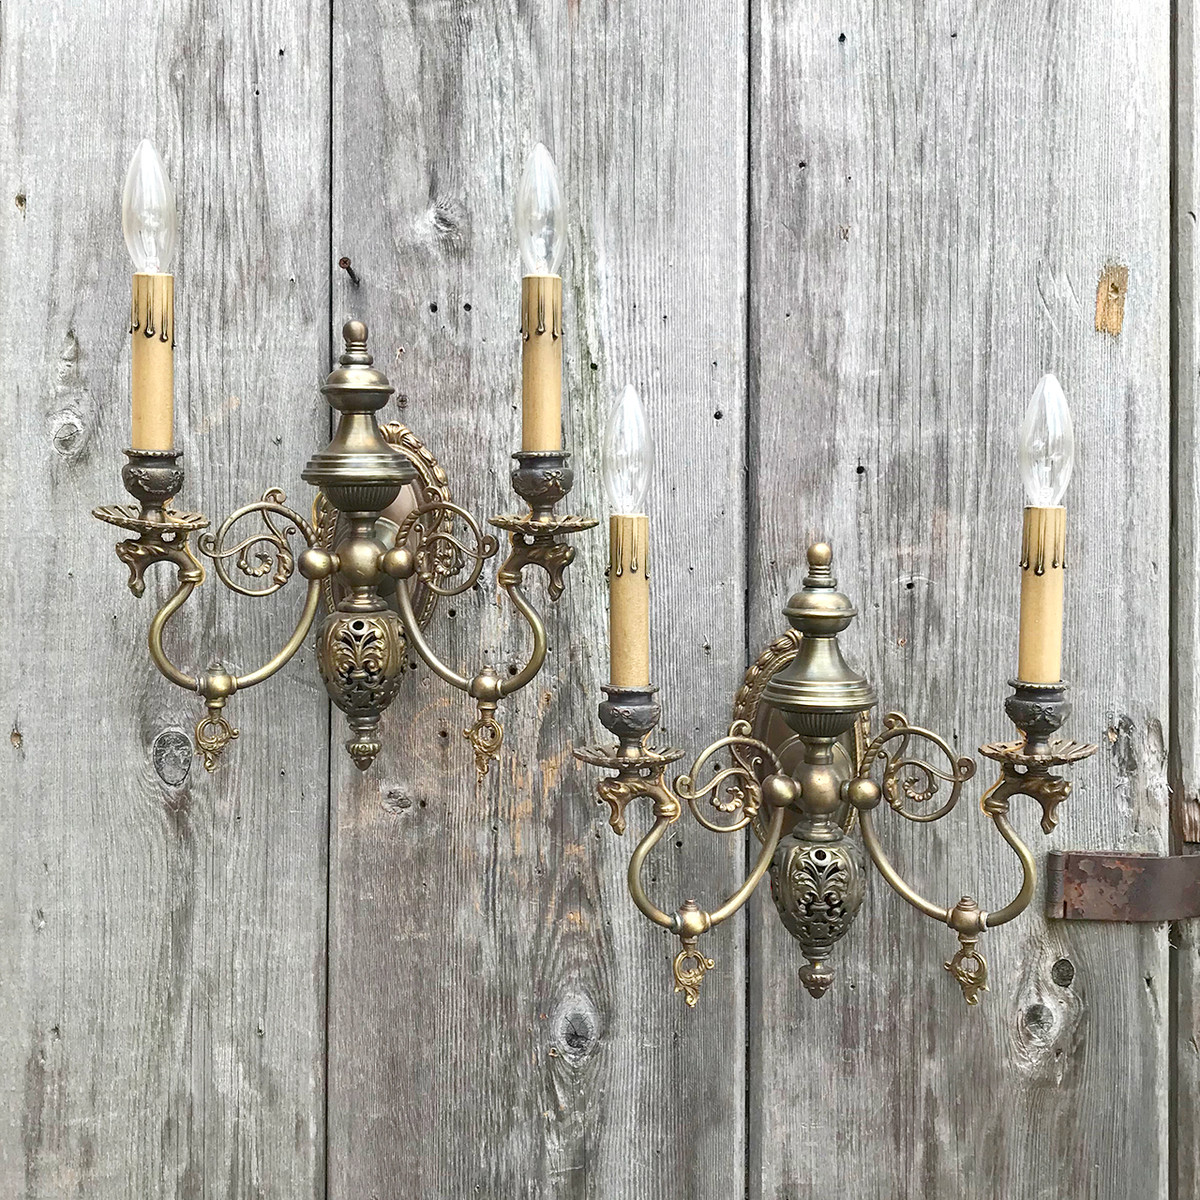 L16155 - Pair of Antique Late Victorian Double Arm Candle Sconces